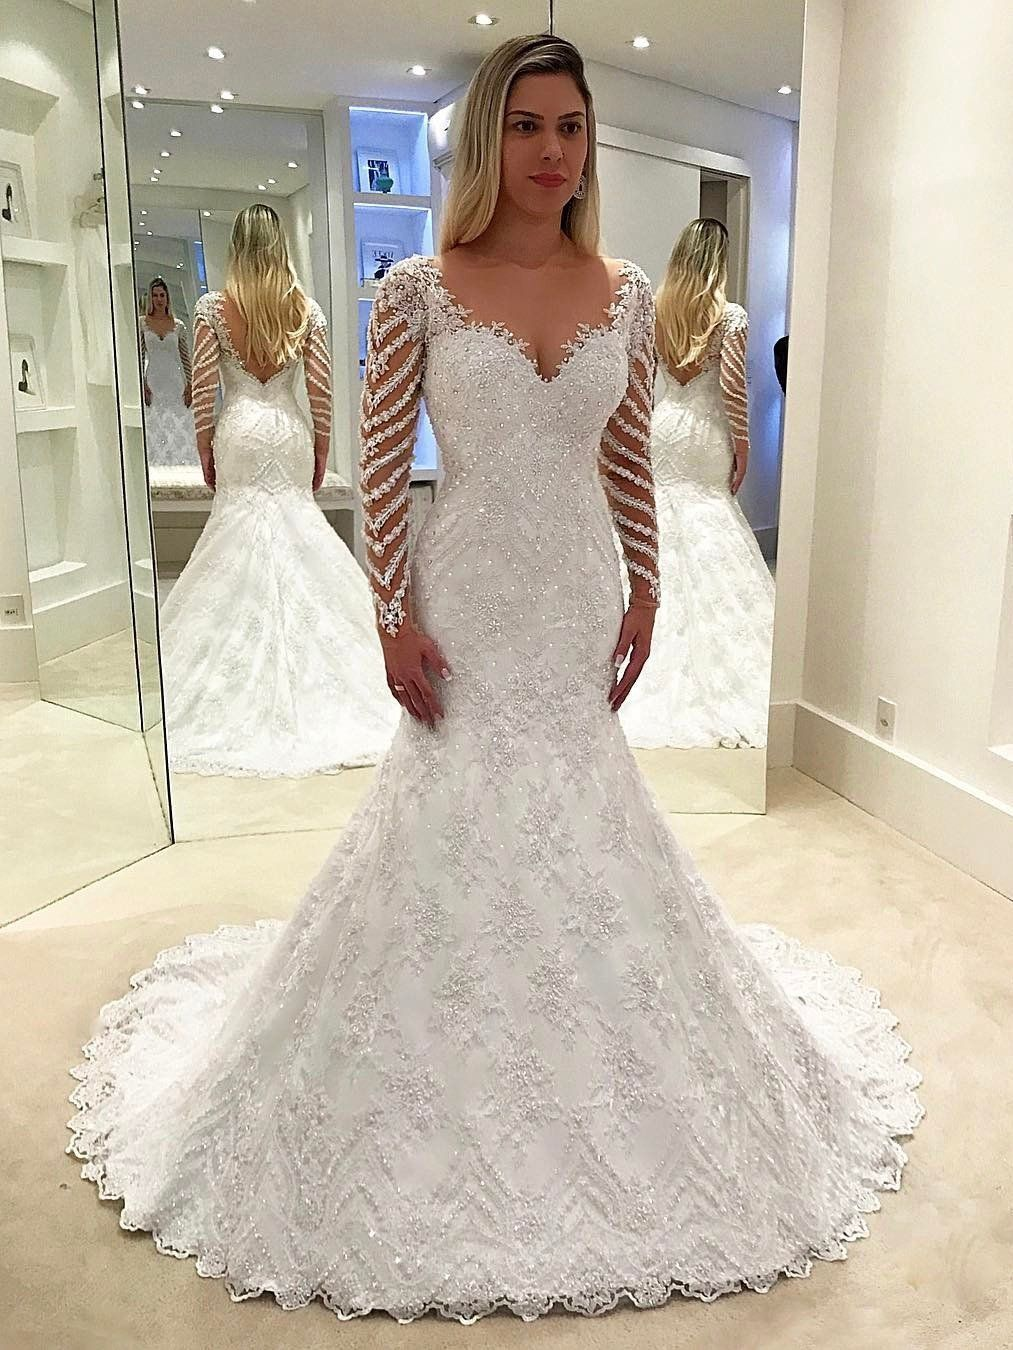 Mermaid wedding dresses with sleeves  Mermaid Wedding DressesV neck Long Sleeve Brush Train Lace Prom